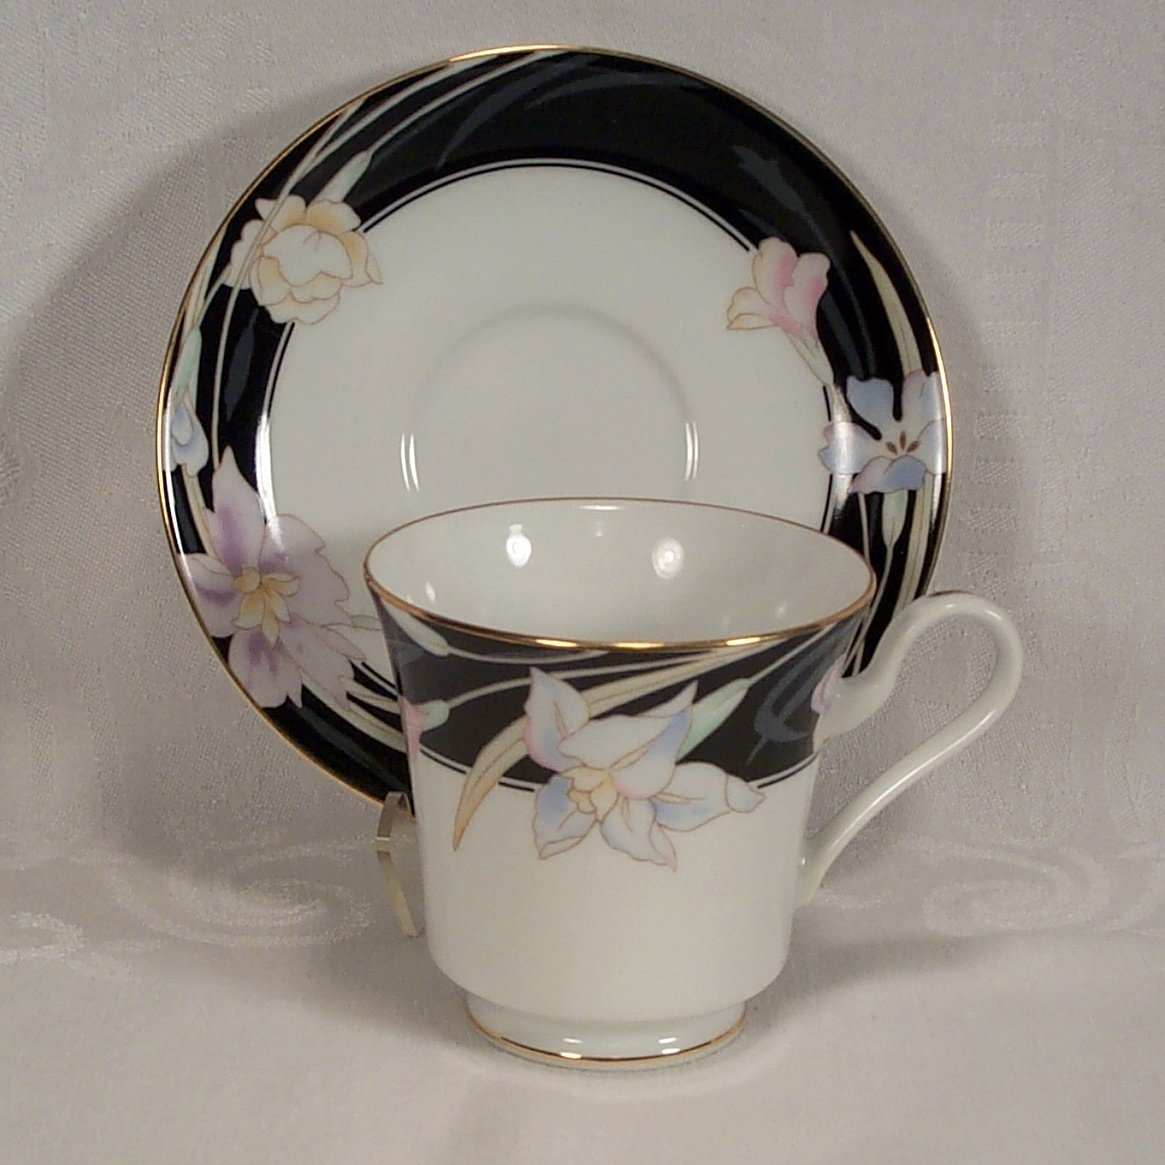 Mikasa Charisma Black Footed Cup and Saucer